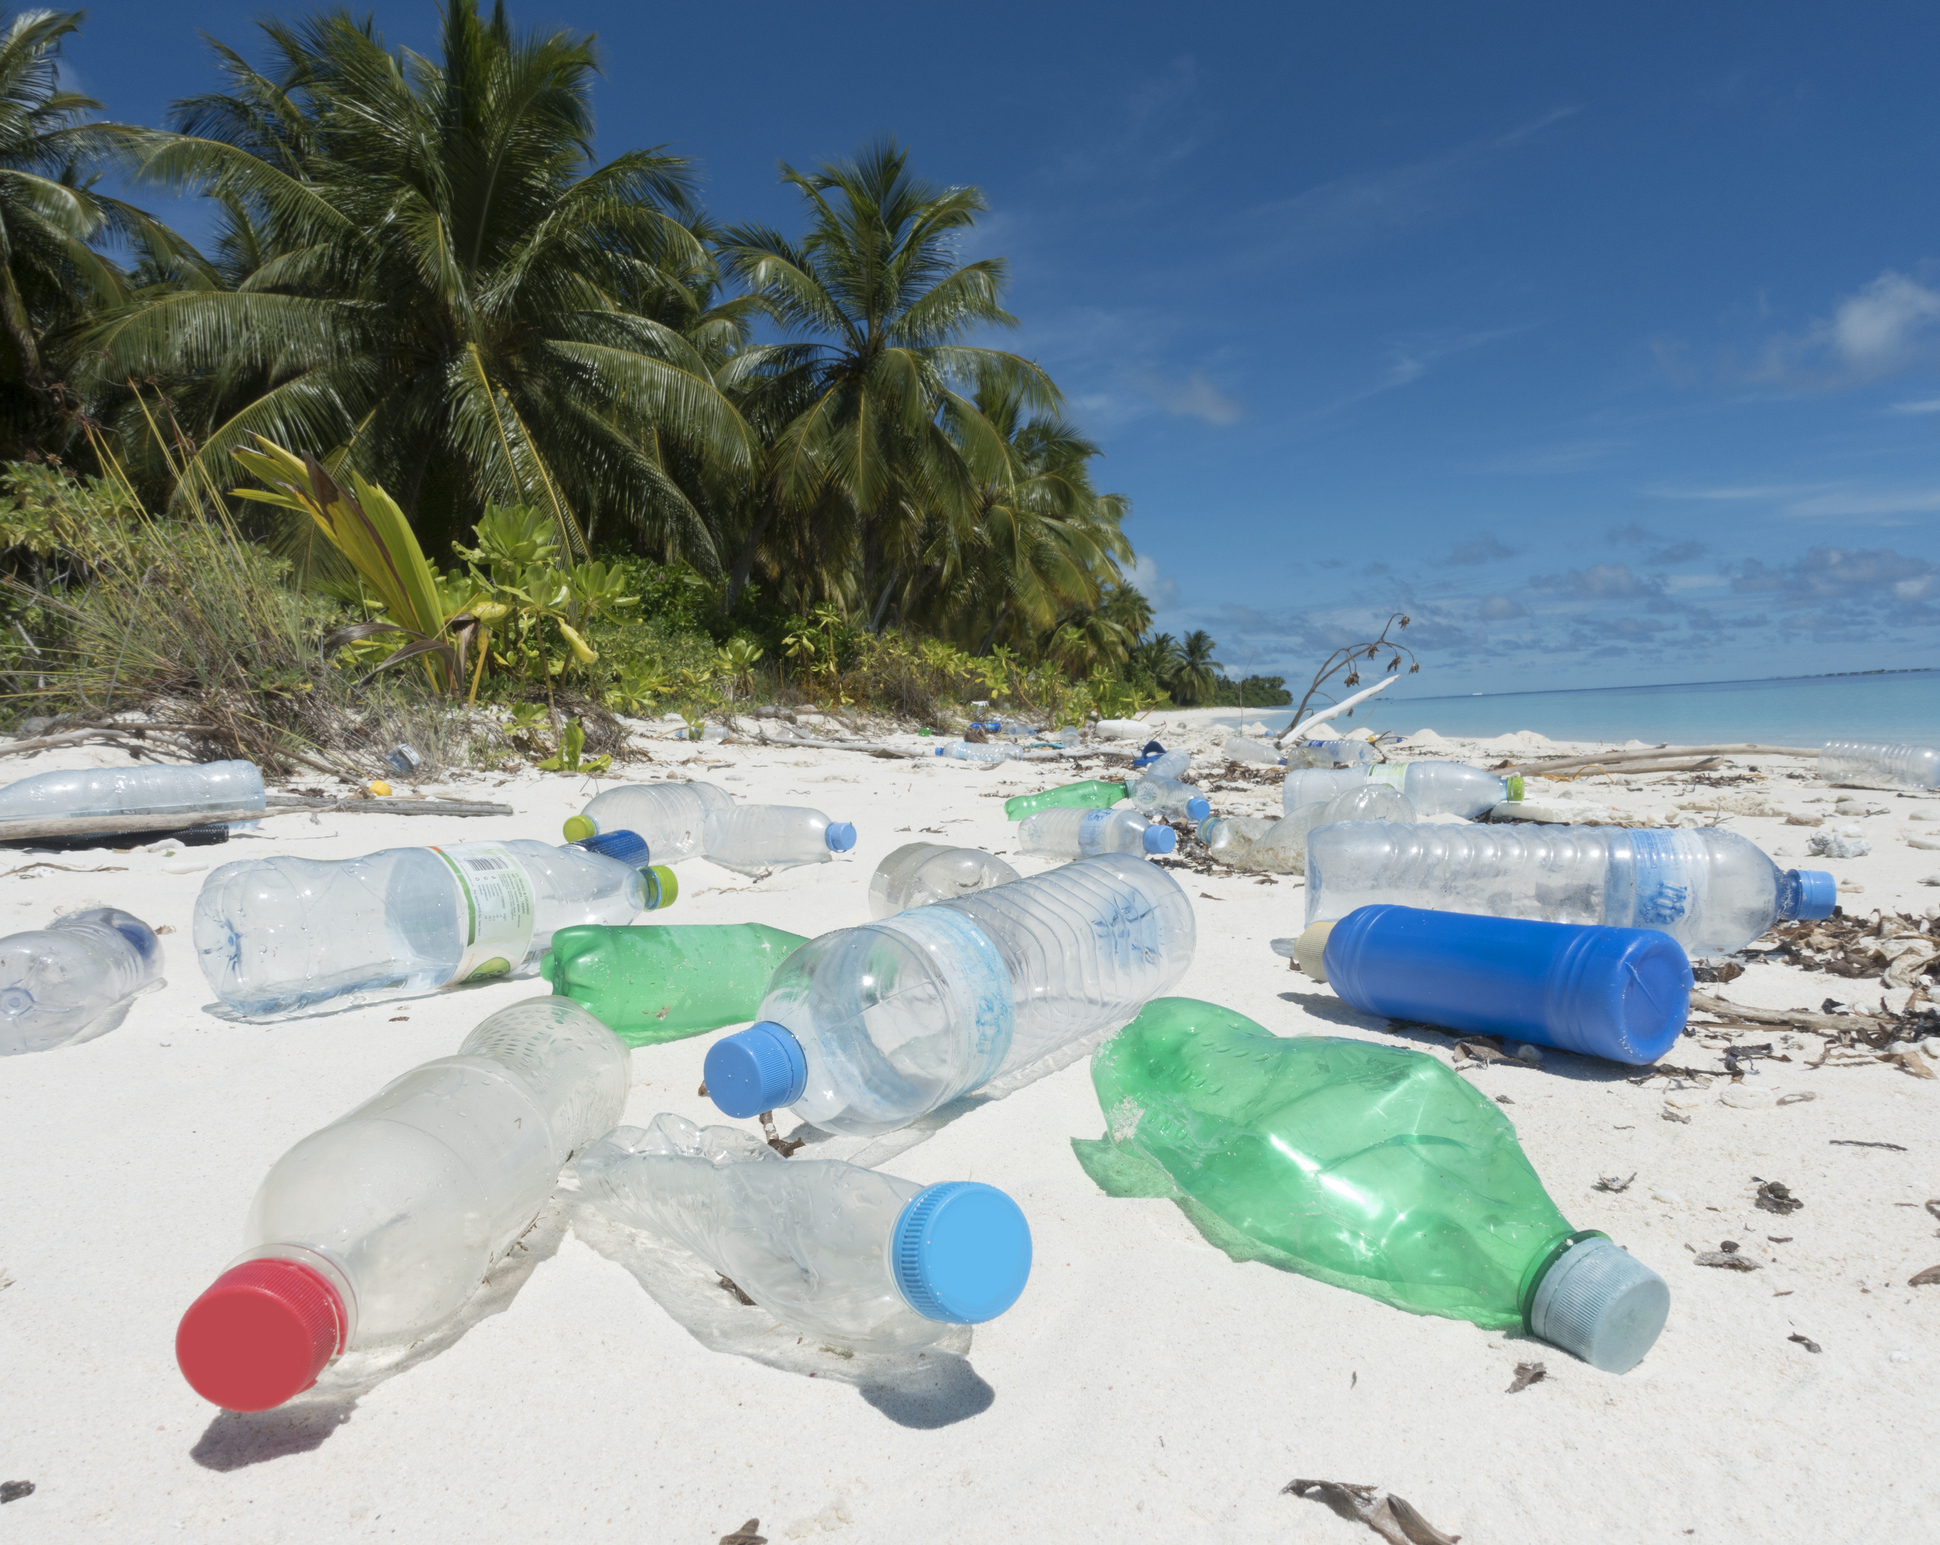 Plastic washed up on tropical island